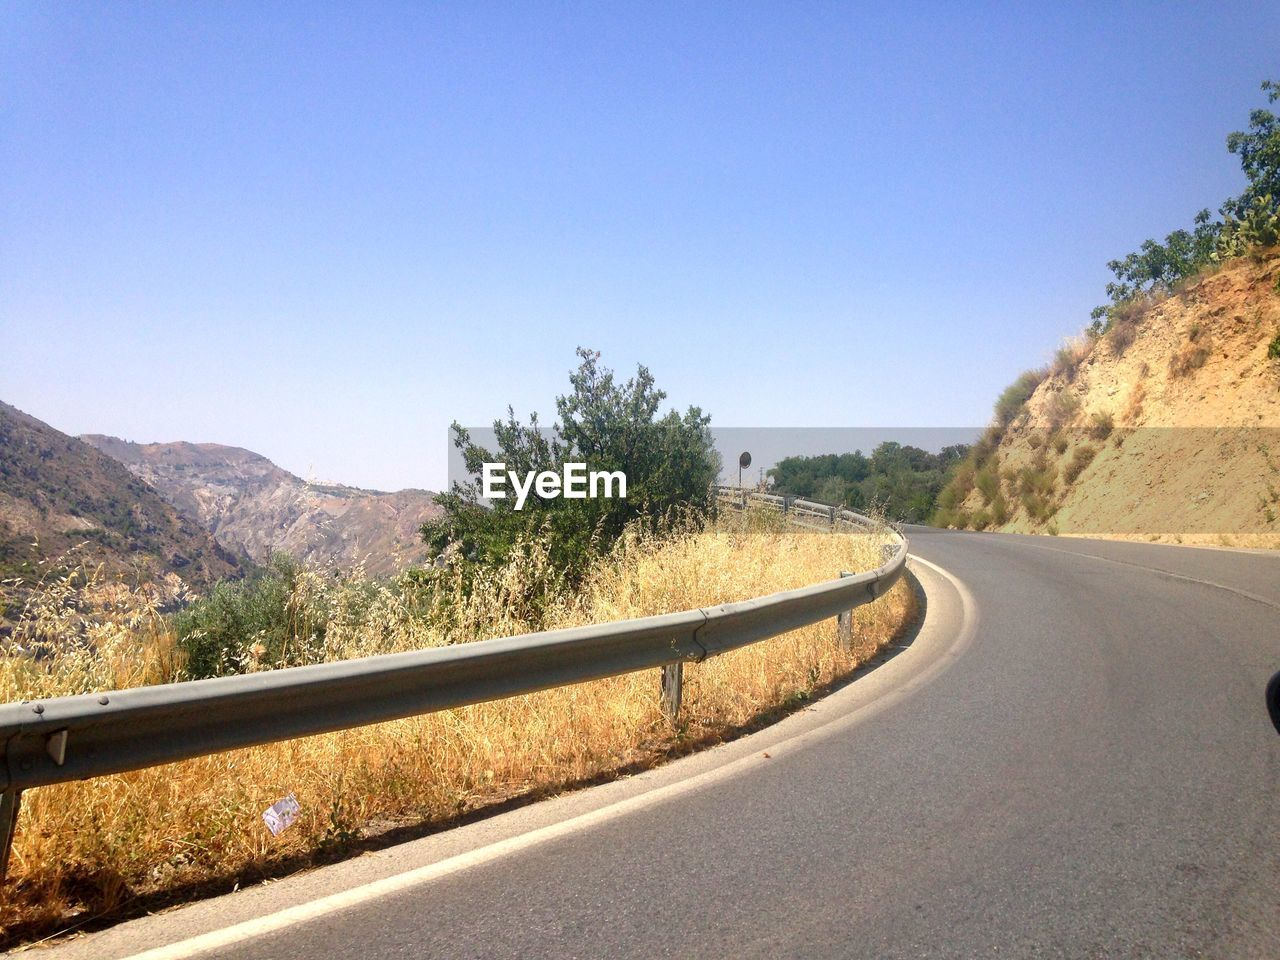 road, sky, mountain, transportation, tree, the way forward, direction, plant, clear sky, nature, day, no people, tranquility, tranquil scene, beauty in nature, landscape, copy space, scenics - nature, environment, empty road, outdoors, crash barrier, long